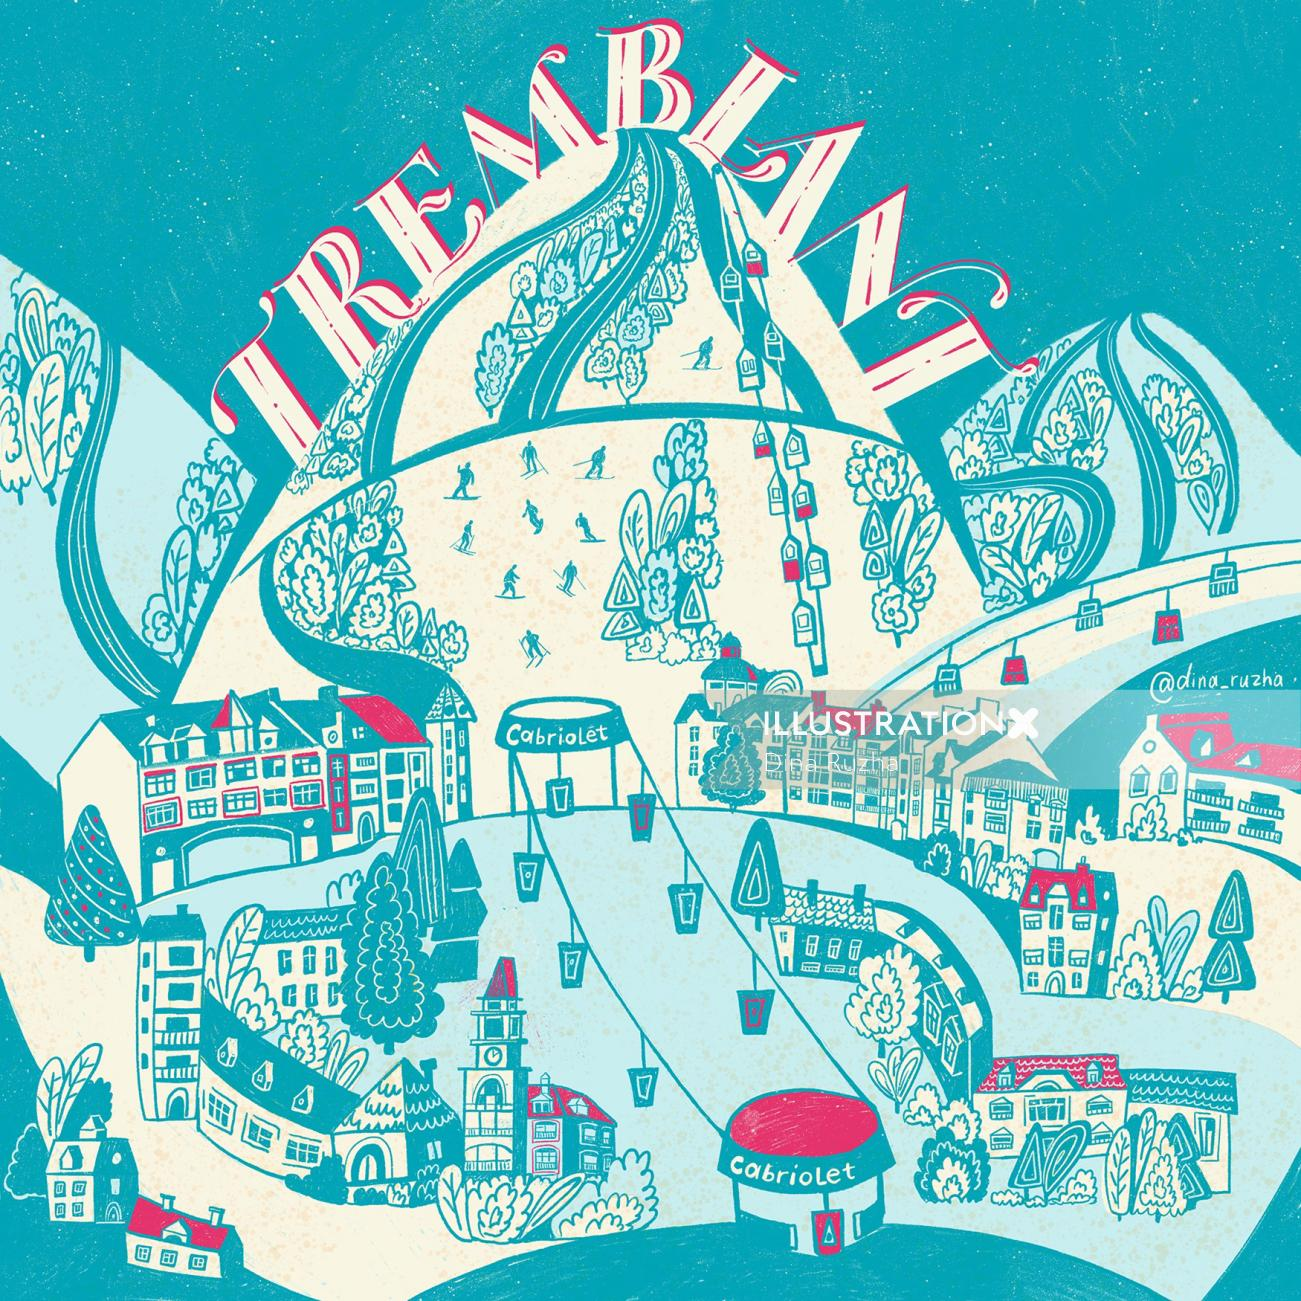 An illustrated map of the mountain Tremblant